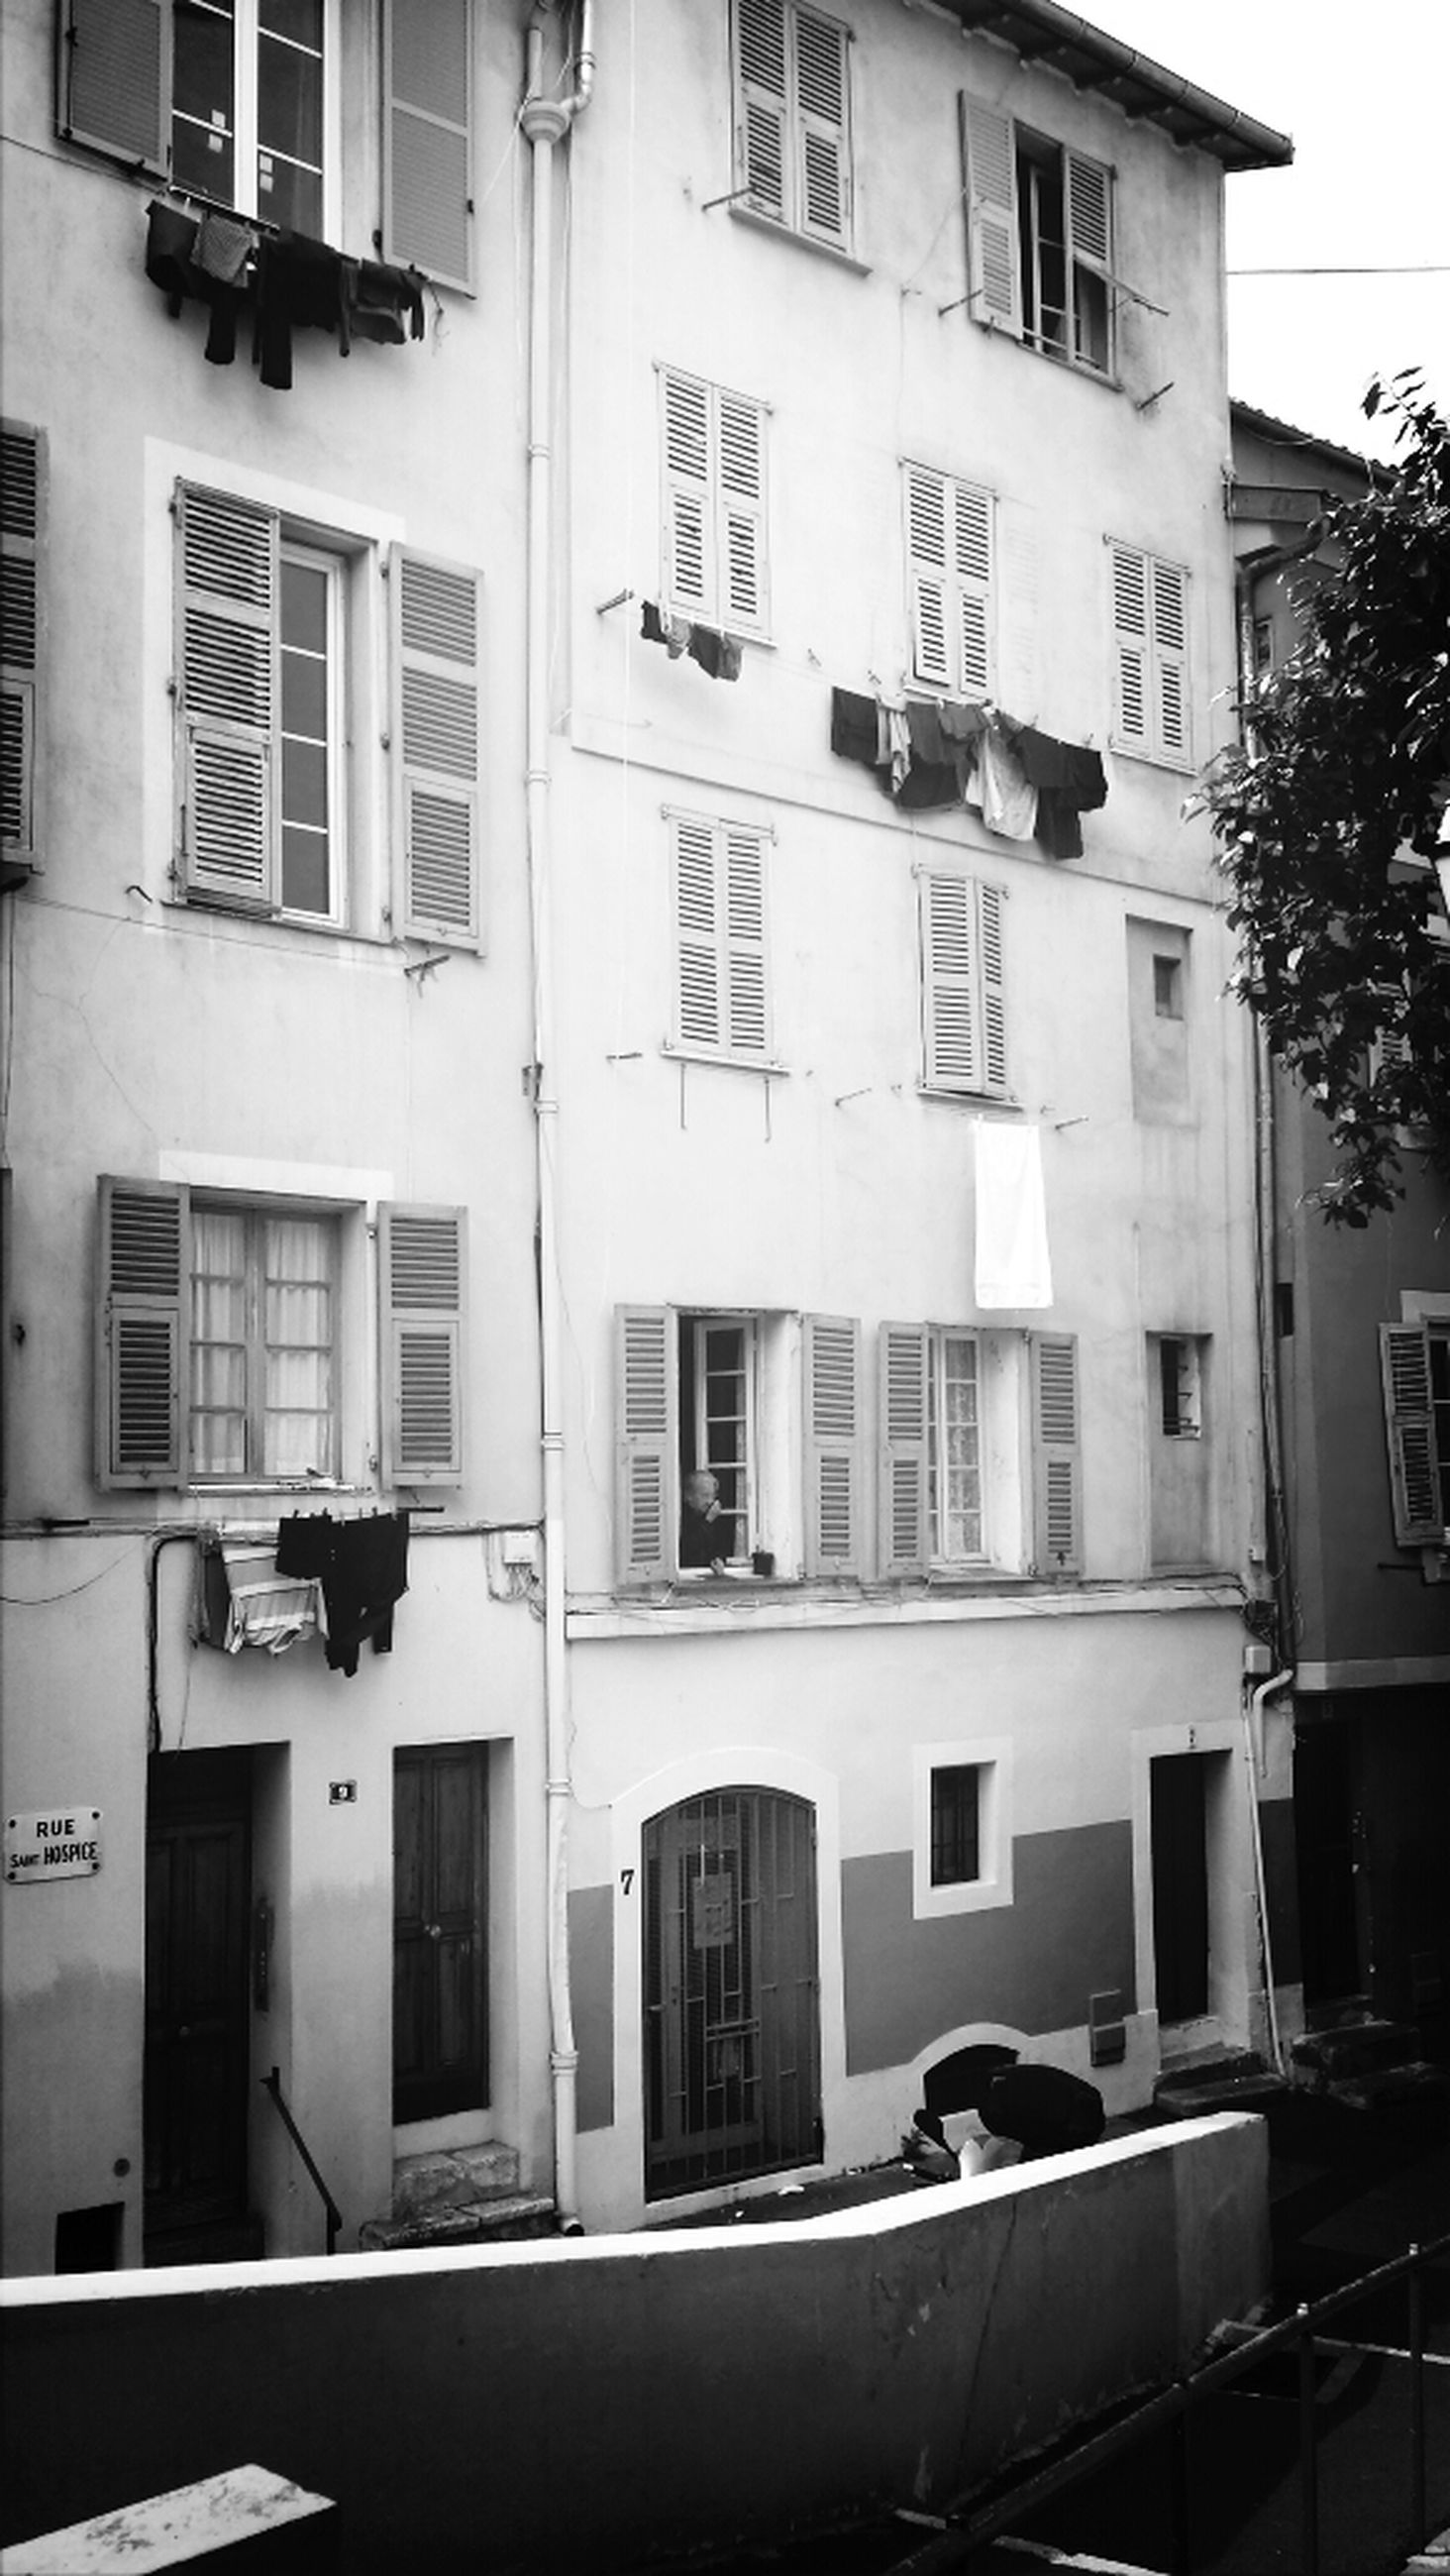 building exterior, architecture, built structure, window, residential building, building, city, residential structure, apartment, balcony, in a row, day, no people, house, outdoors, facade, glass - material, street, city life, car